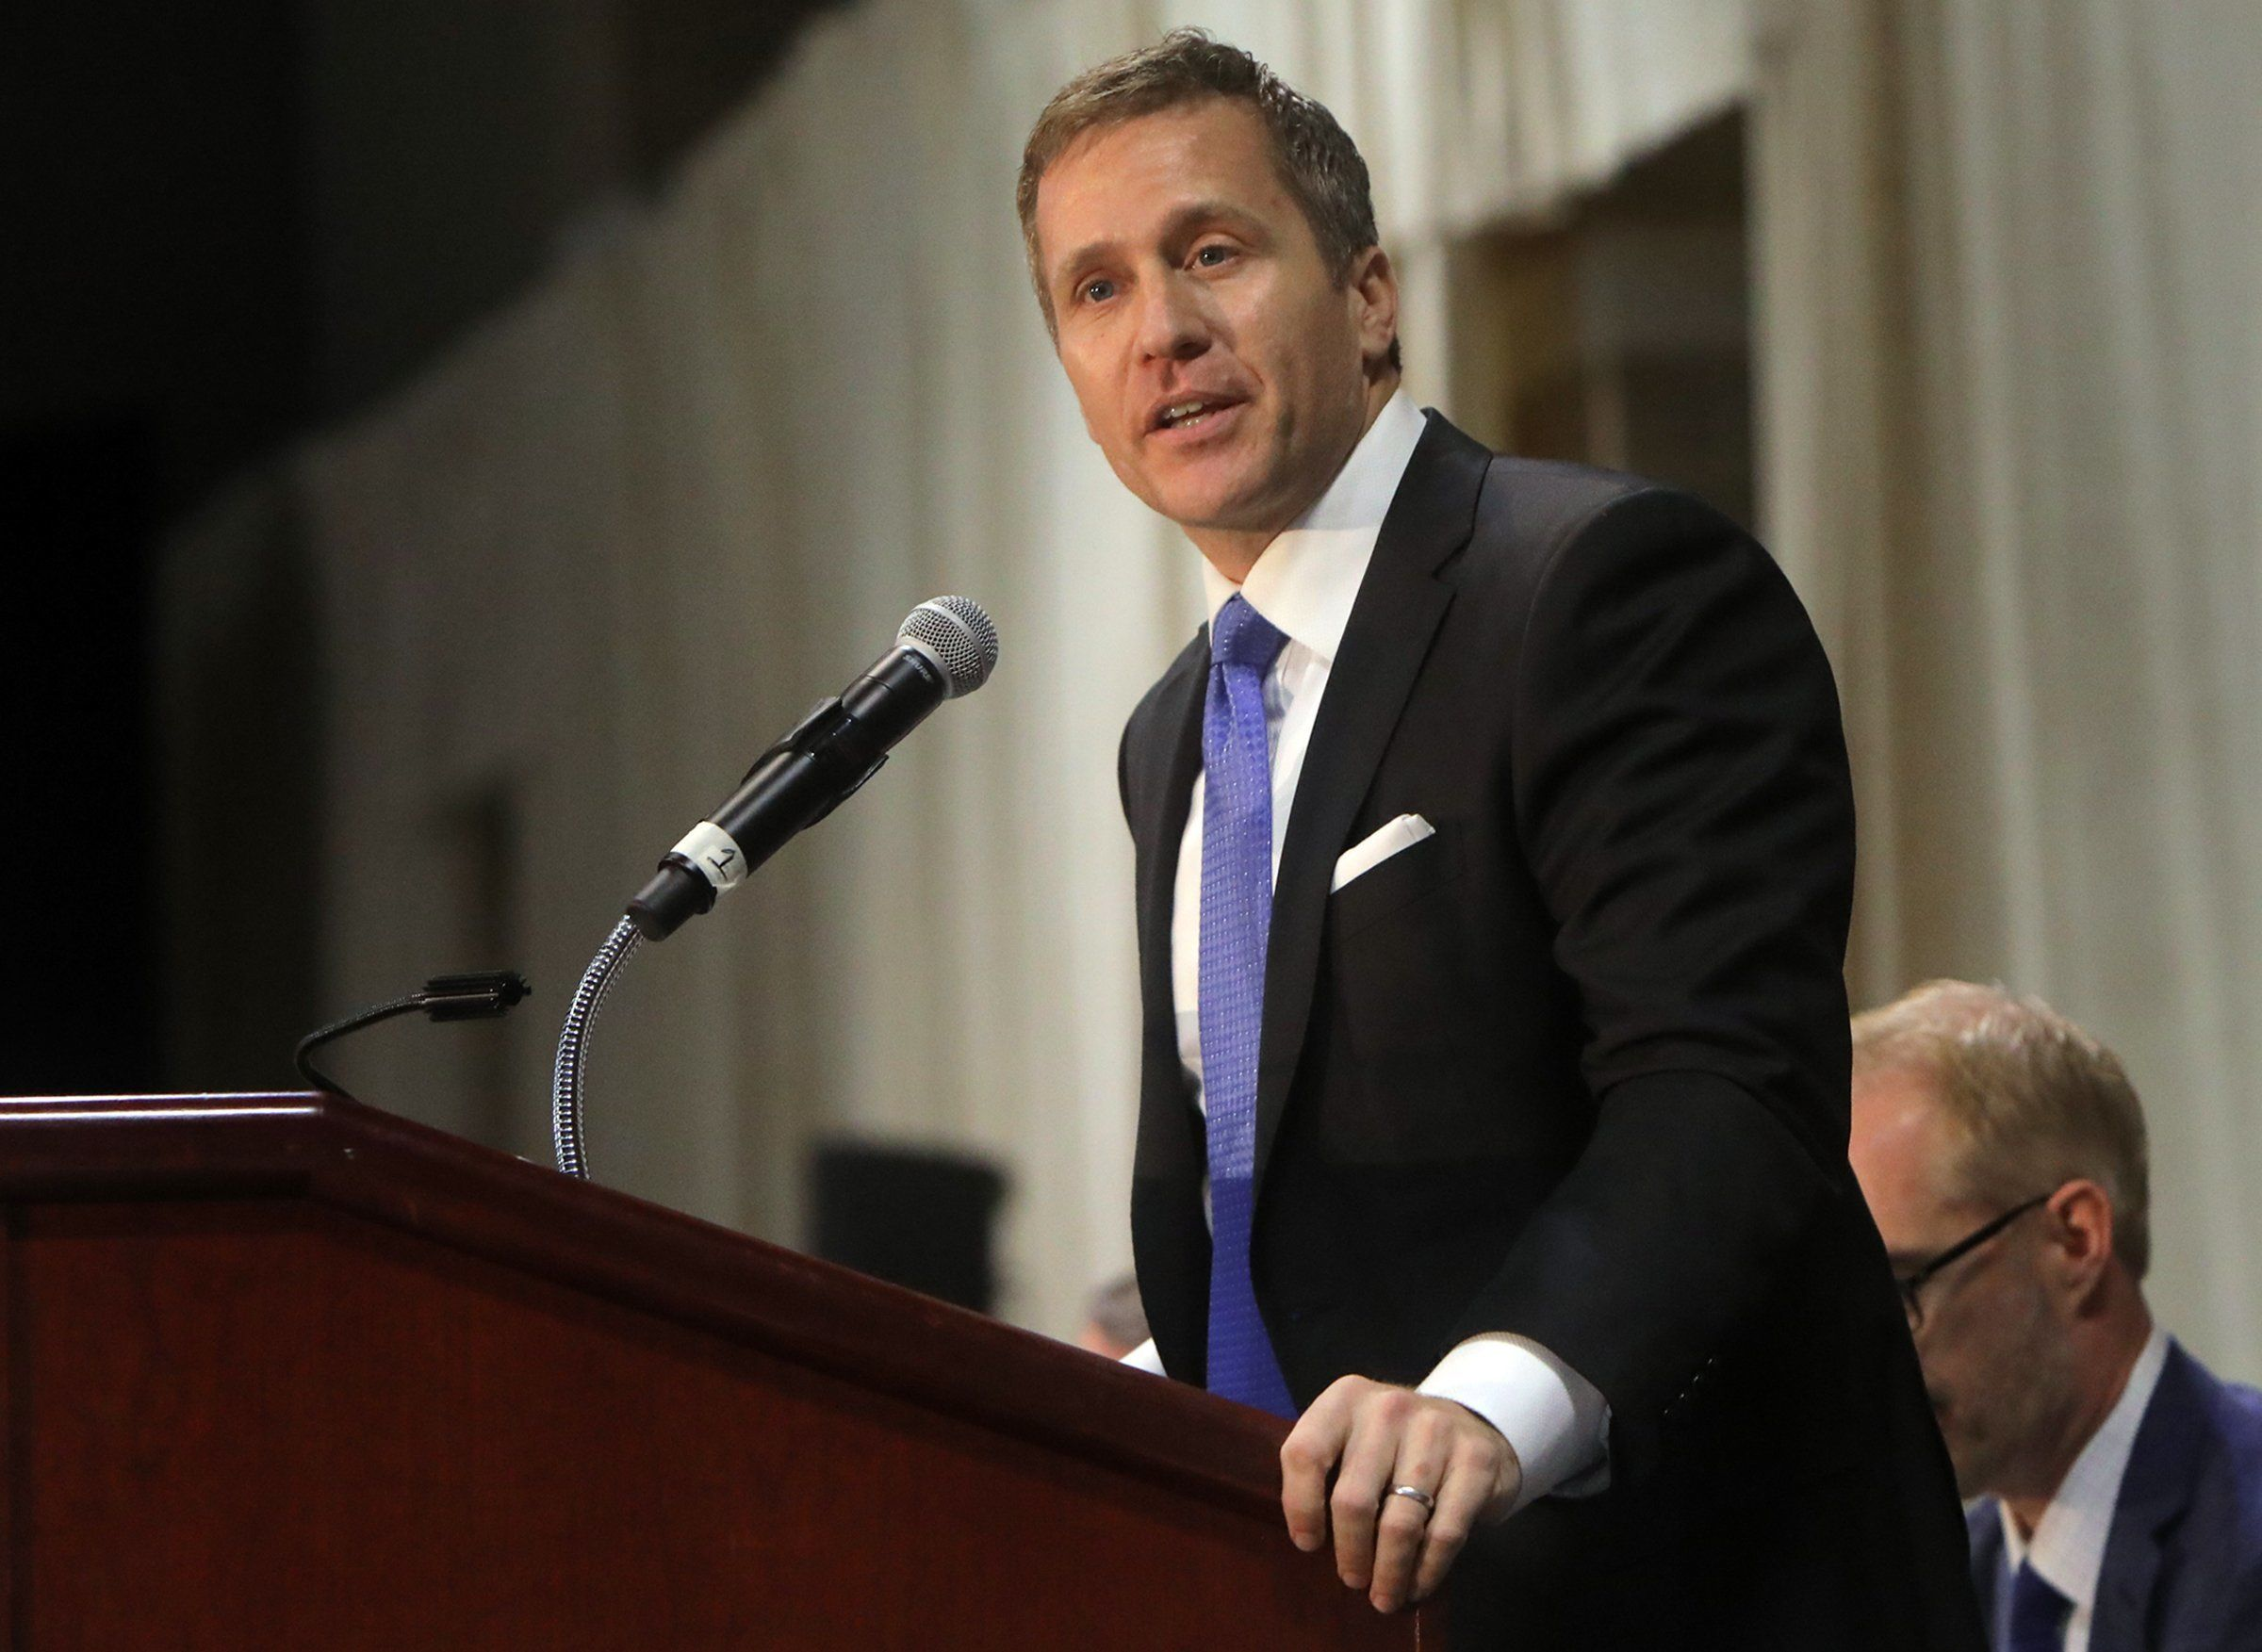 Gov. Eric Greitens delivers the keynote address at the St. Louis Area Police Chiefs Association 27th Annual Police Officer Memorial Prayer Breakfast on April 25, 2018, at the St. Charles Convention Center. (Laurie Skrivan/St. Louis Post-Dispatch/TNS via Getty Images)